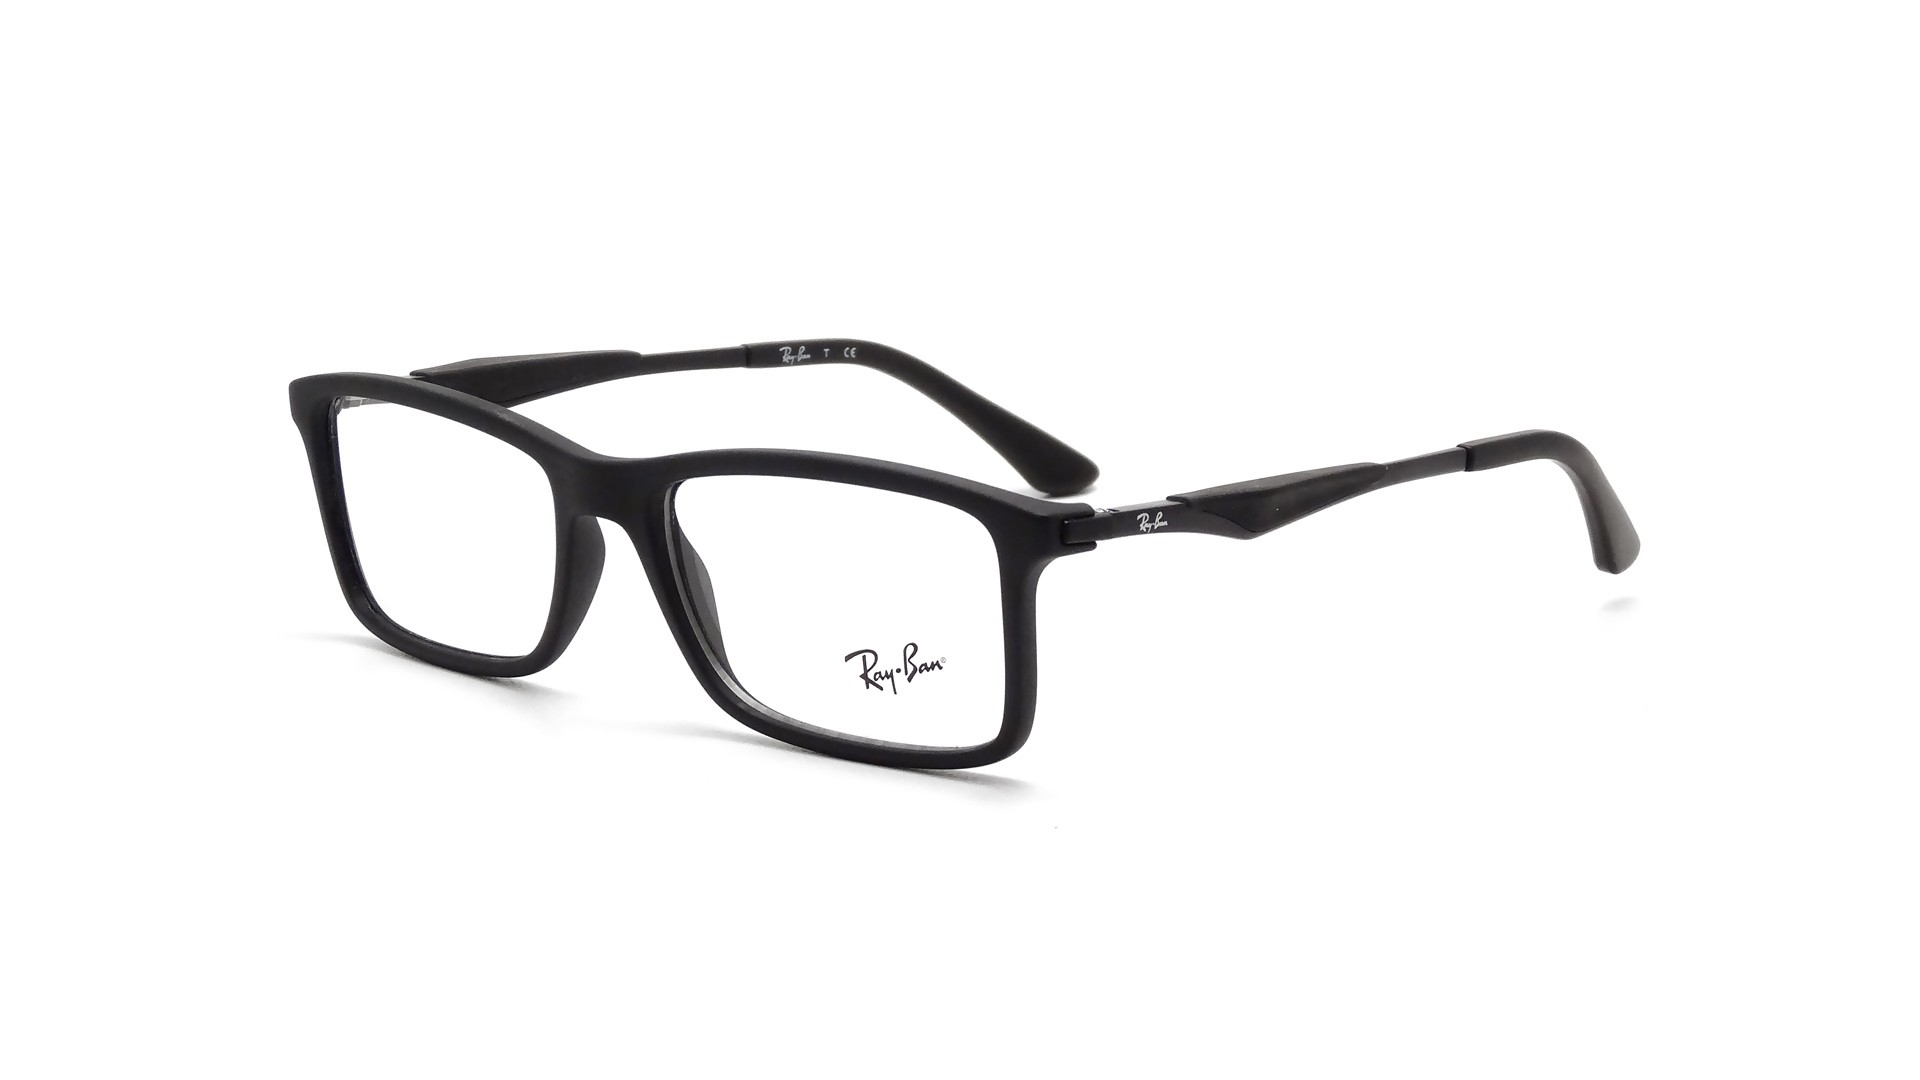 695eab67df Ray Ban Black Matte Frames For Pictures « Heritage Malta